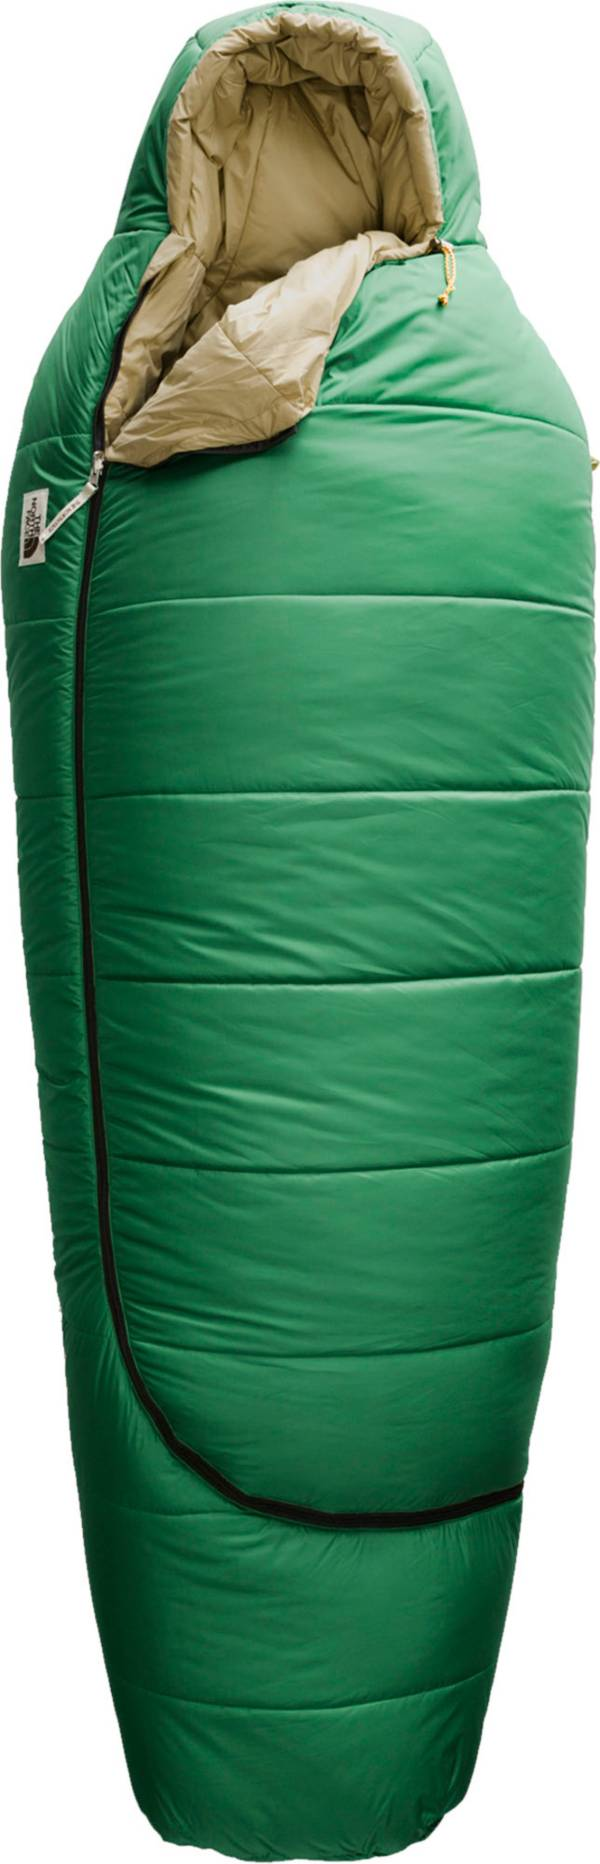 The North Face Eco Trail Synth - 0 Sleeping Bag product image